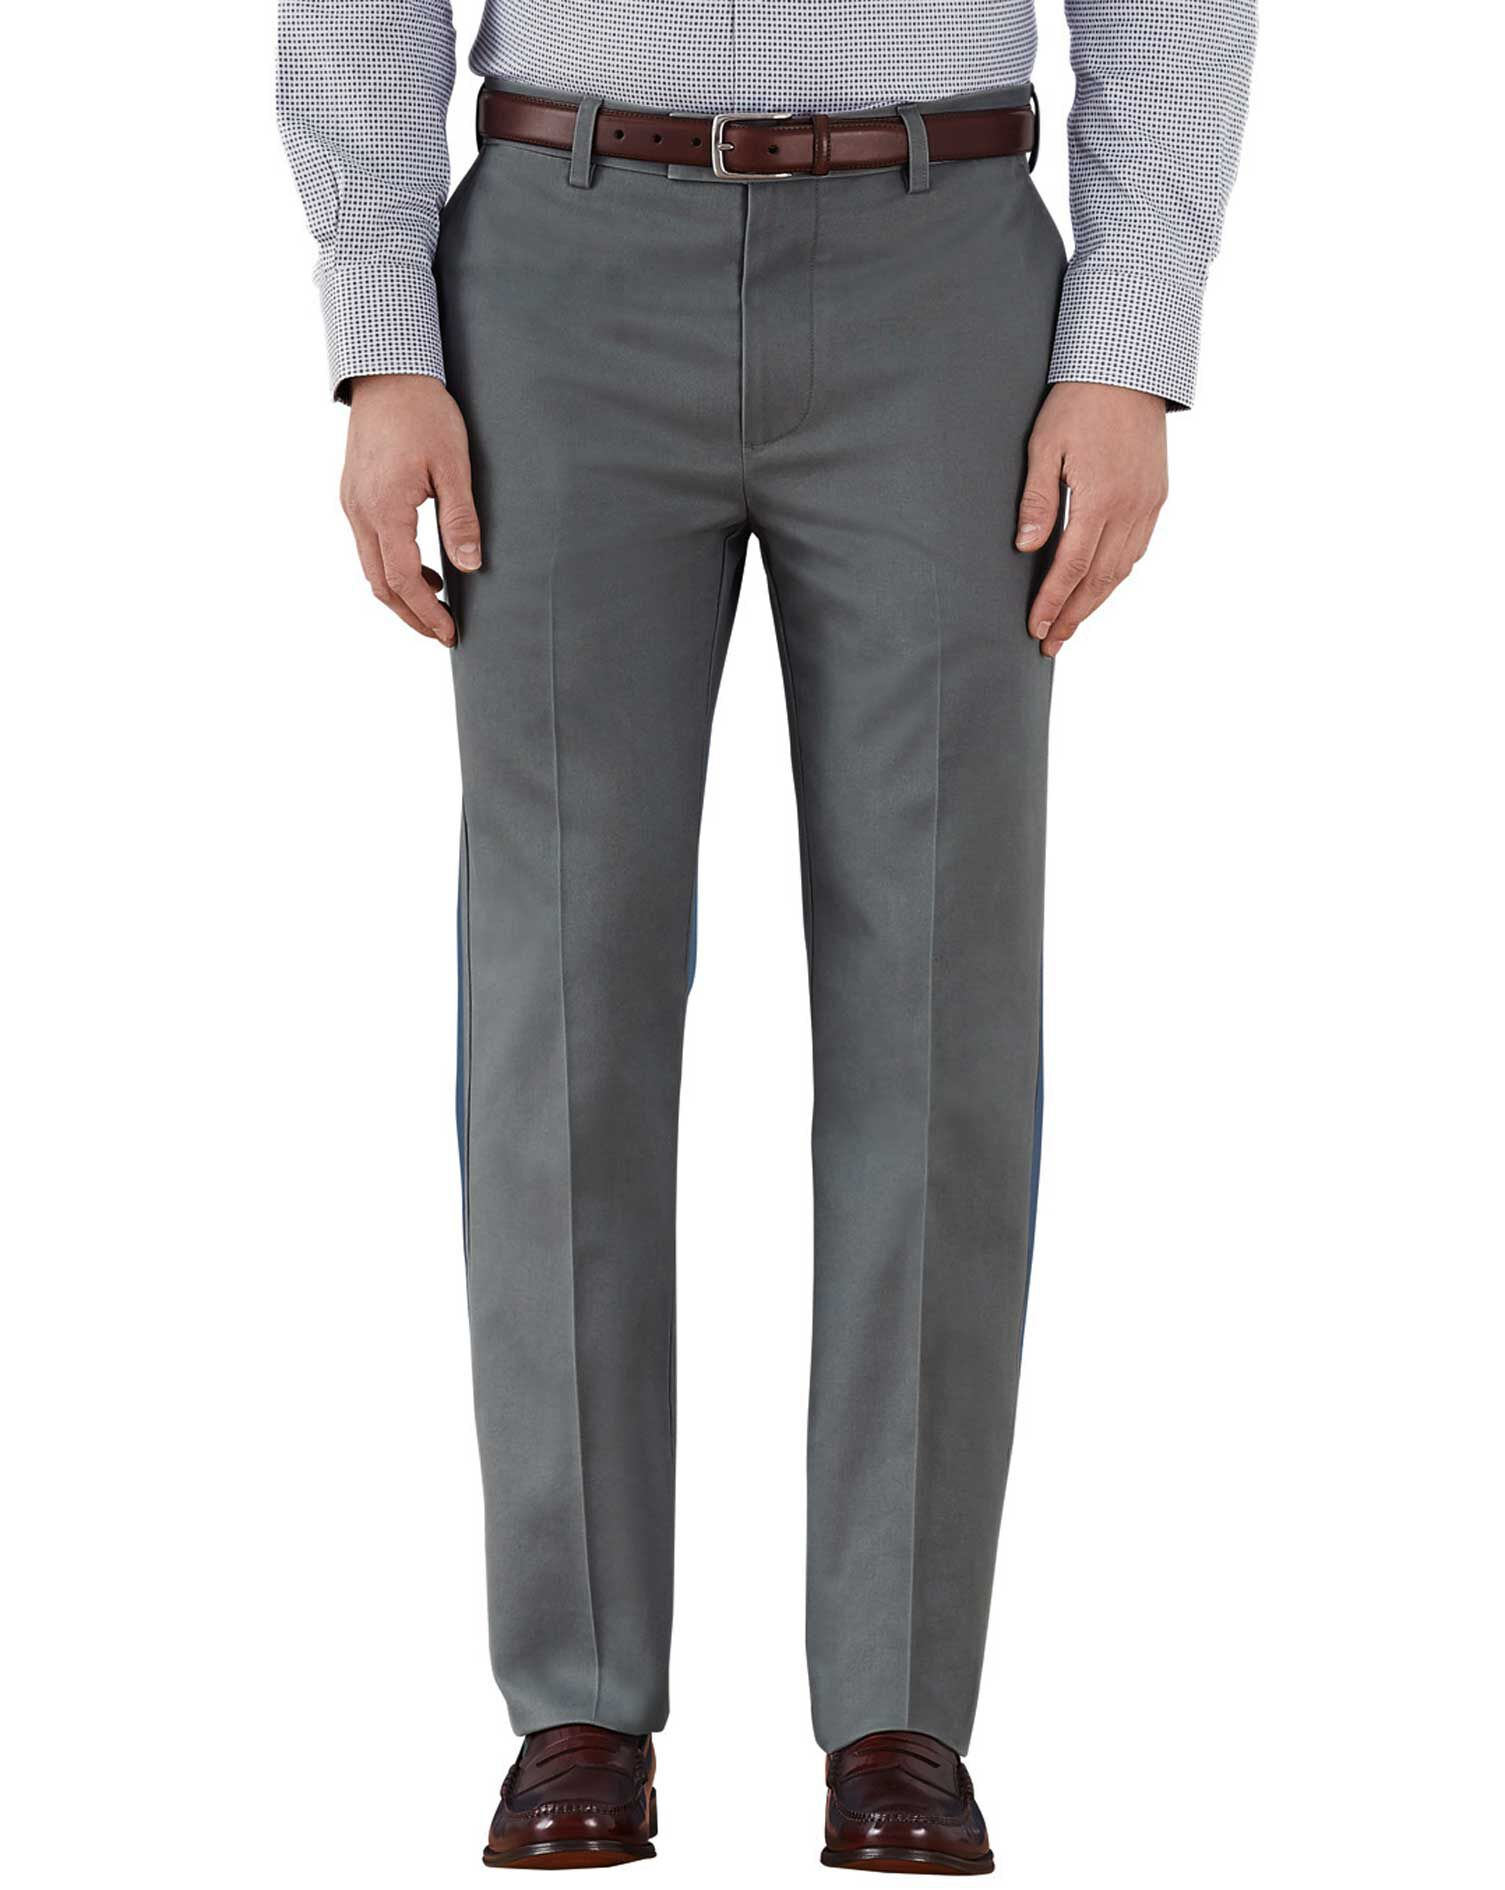 Grey Slim Fit Flat Front Weekend Cotton Chino Trousers Size W30 L30 by Charles Tyrwhitt